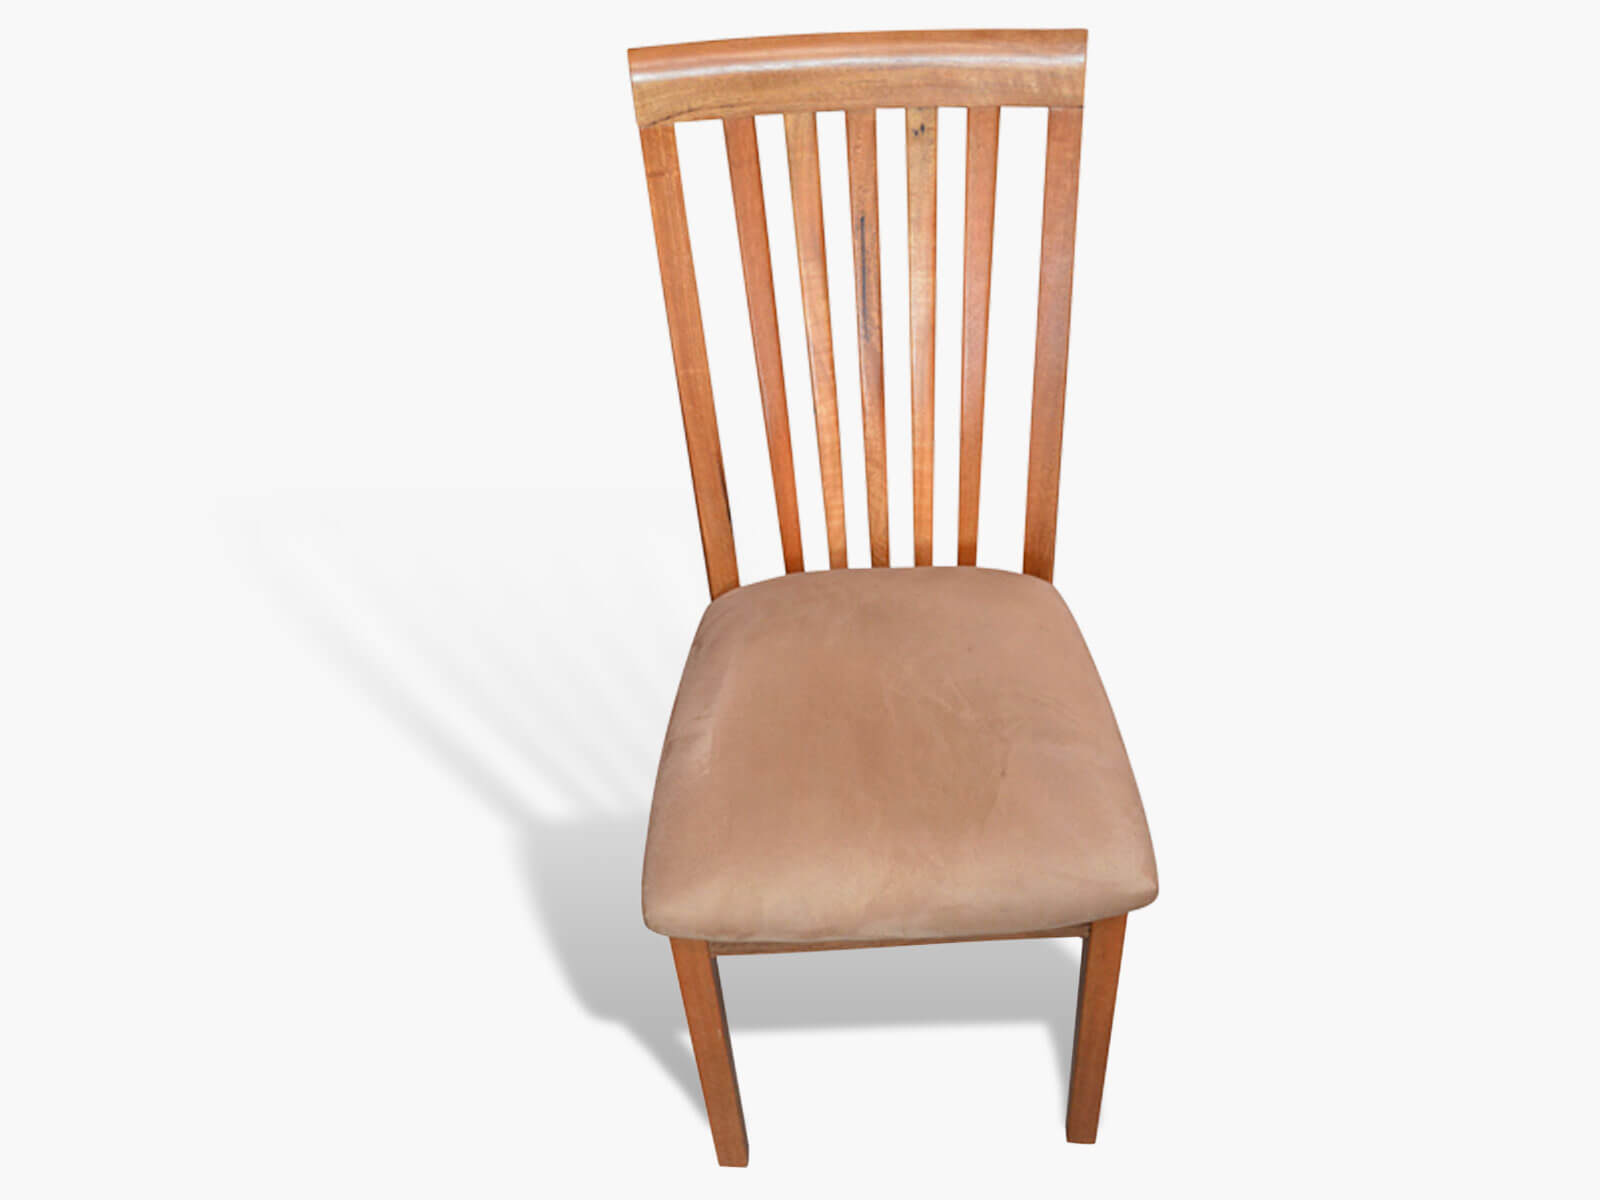 Onslow Marri Dining Chair